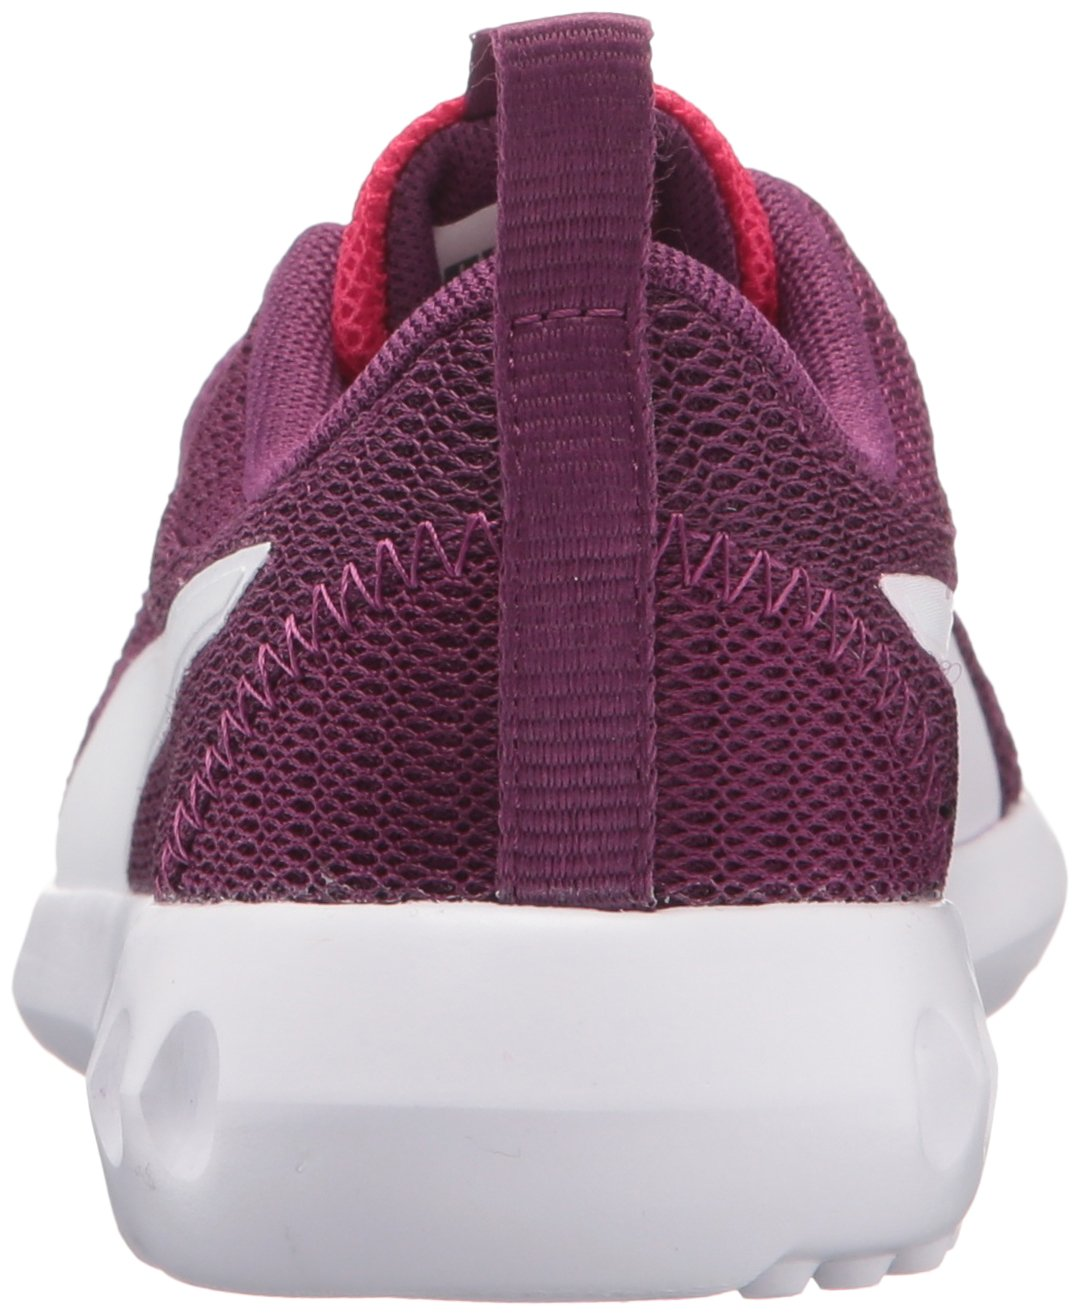 PUMA Unisex-Kids Carson 2 Sneaker, Love Potion White, 13 M US Little Kid by PUMA (Image #2)